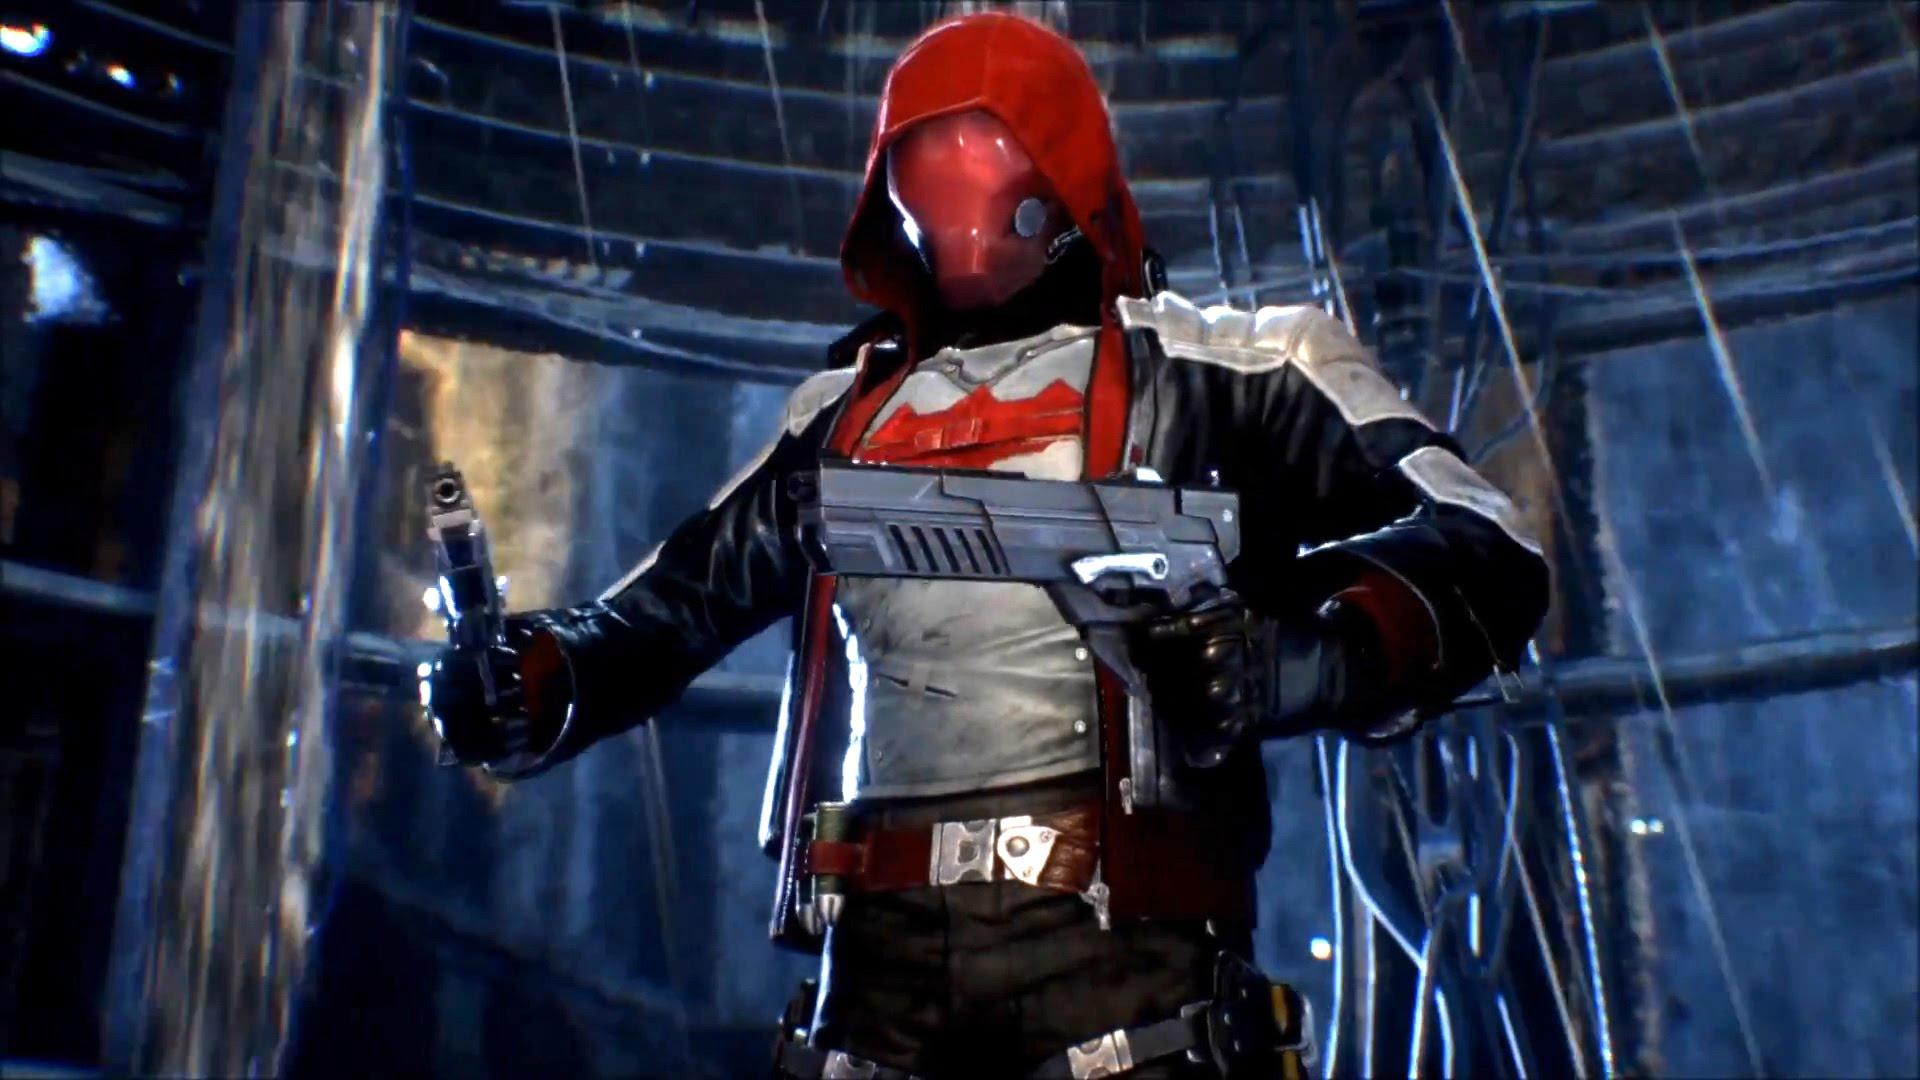 Batman Arkham Knight: New Videos Showcase Red Hood Story Pack and Amazing  Graphics | popgeeks.com